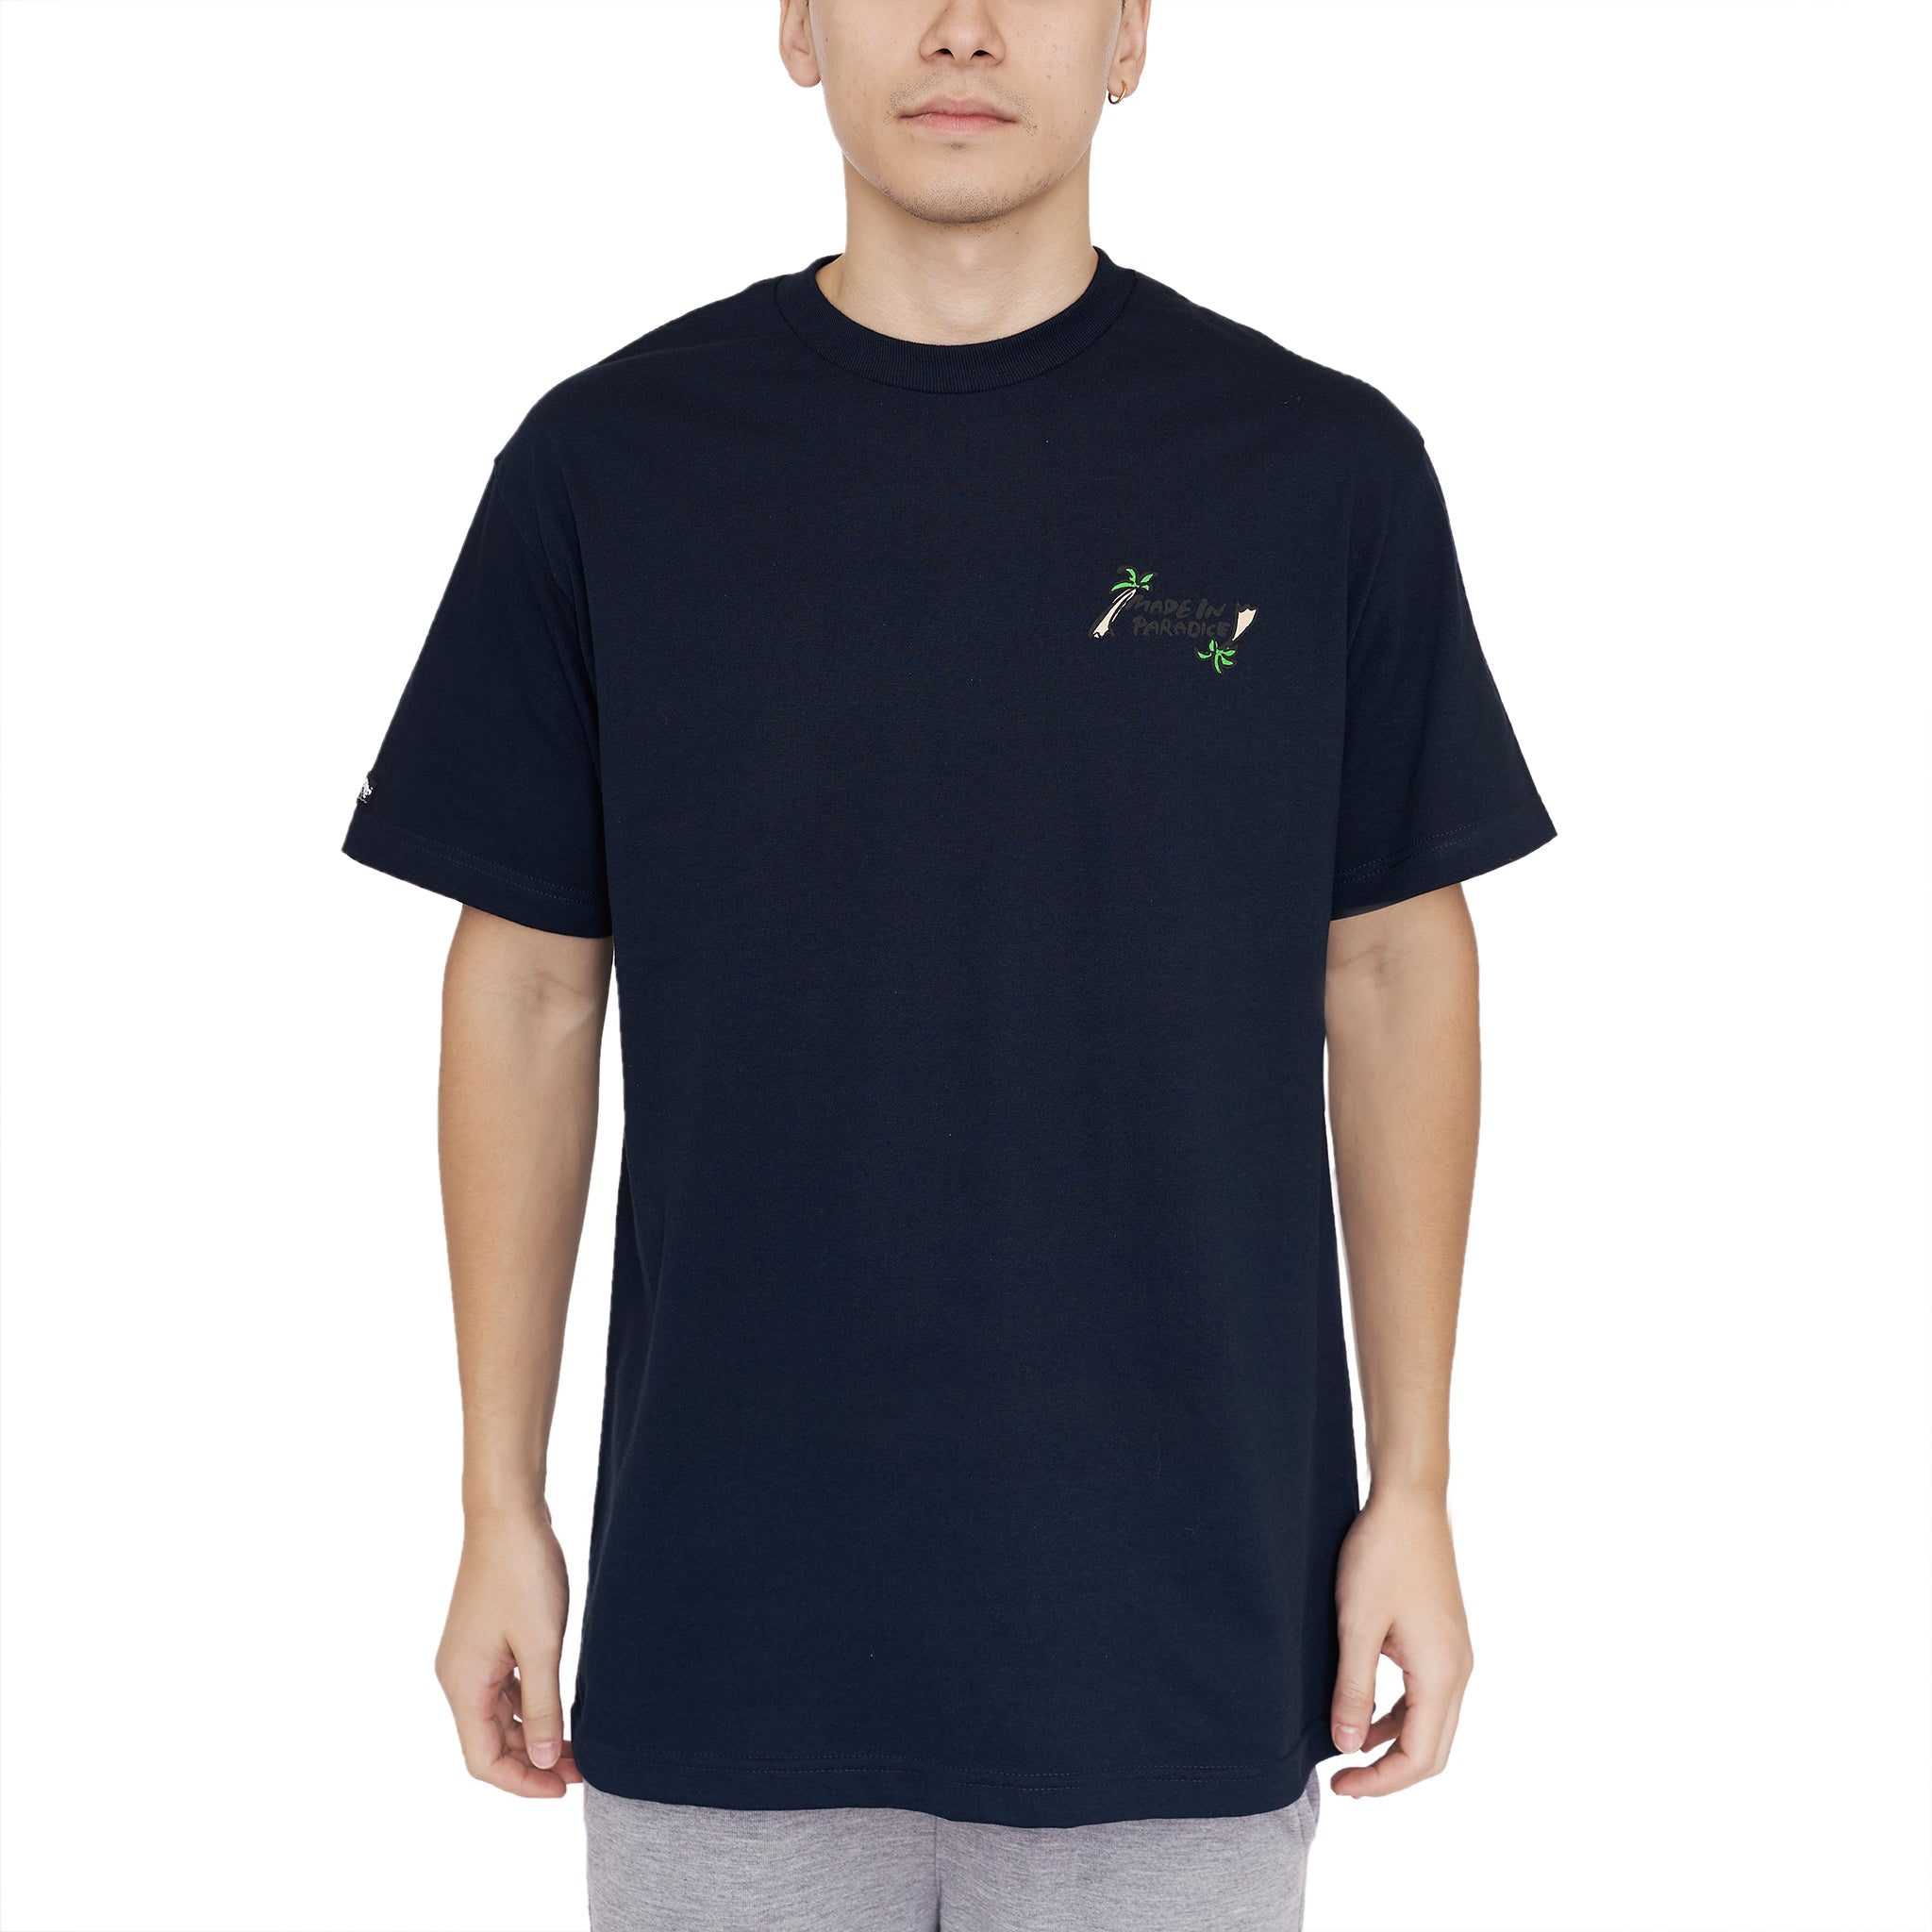 THE STROLL TEE - DARK NAVY